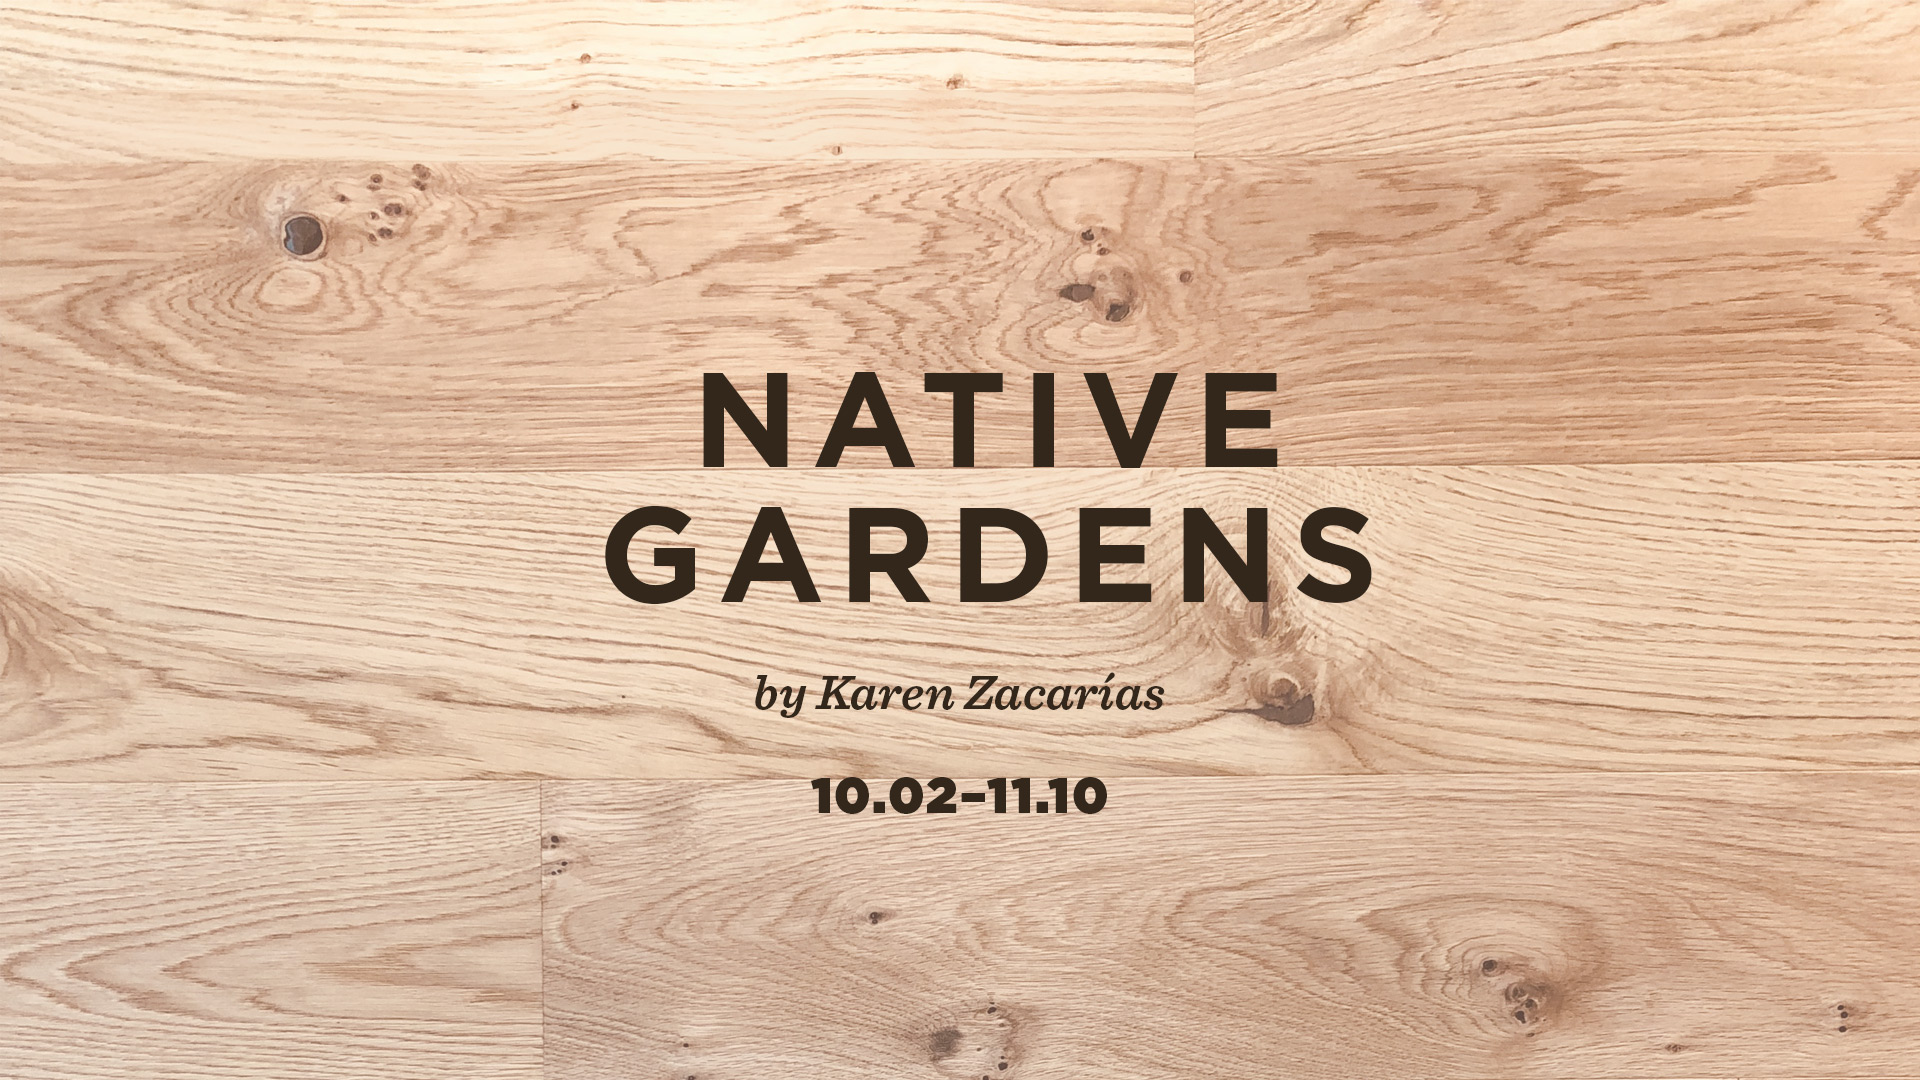 Show-Website-Page-Header-Native-Gardens-1920x1080.jpg